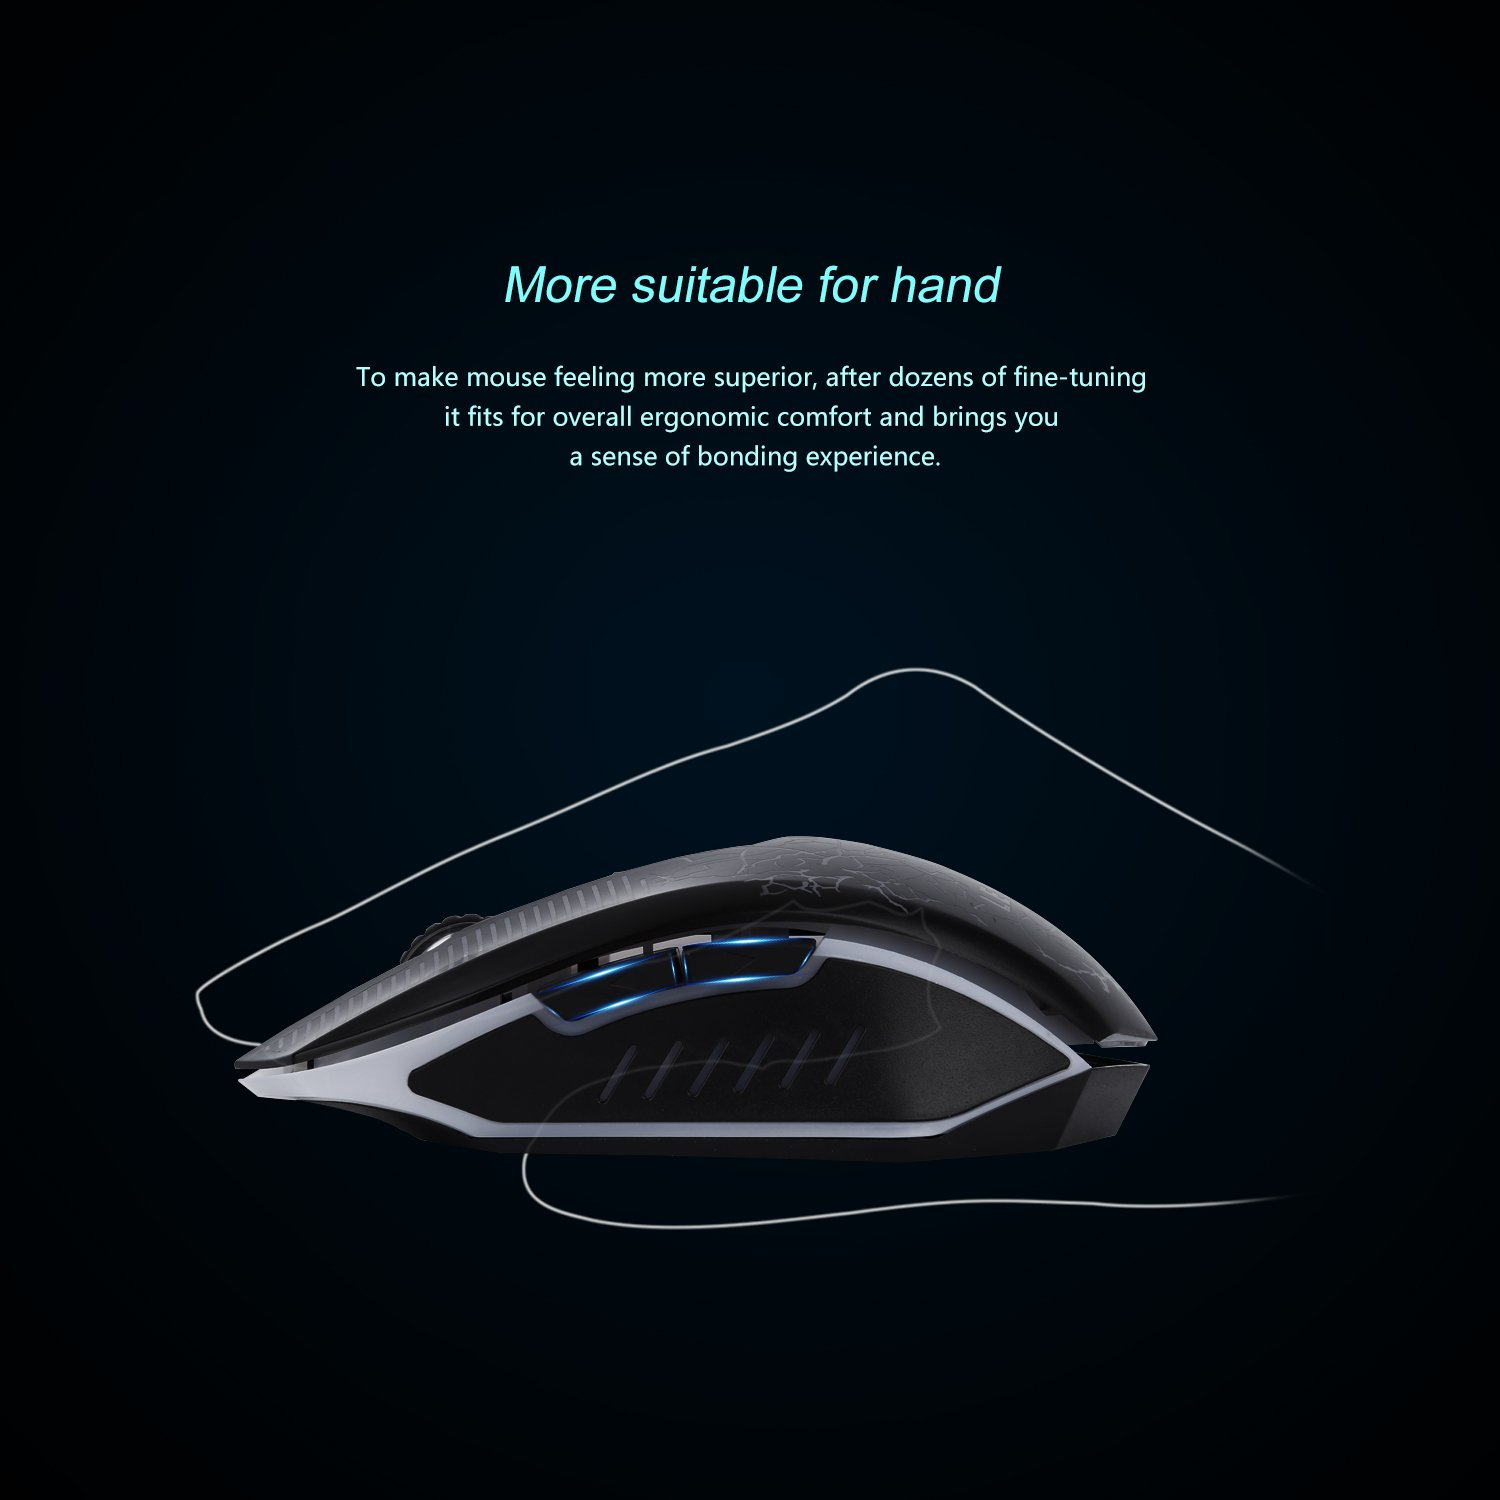 Gaming Mouse,LESHP Ergonomic USB Wired Gaming Mouse Mice with 2400DPI Adjustable High Precision 6 Button LED Optical for Laptop PC Computer Gamer